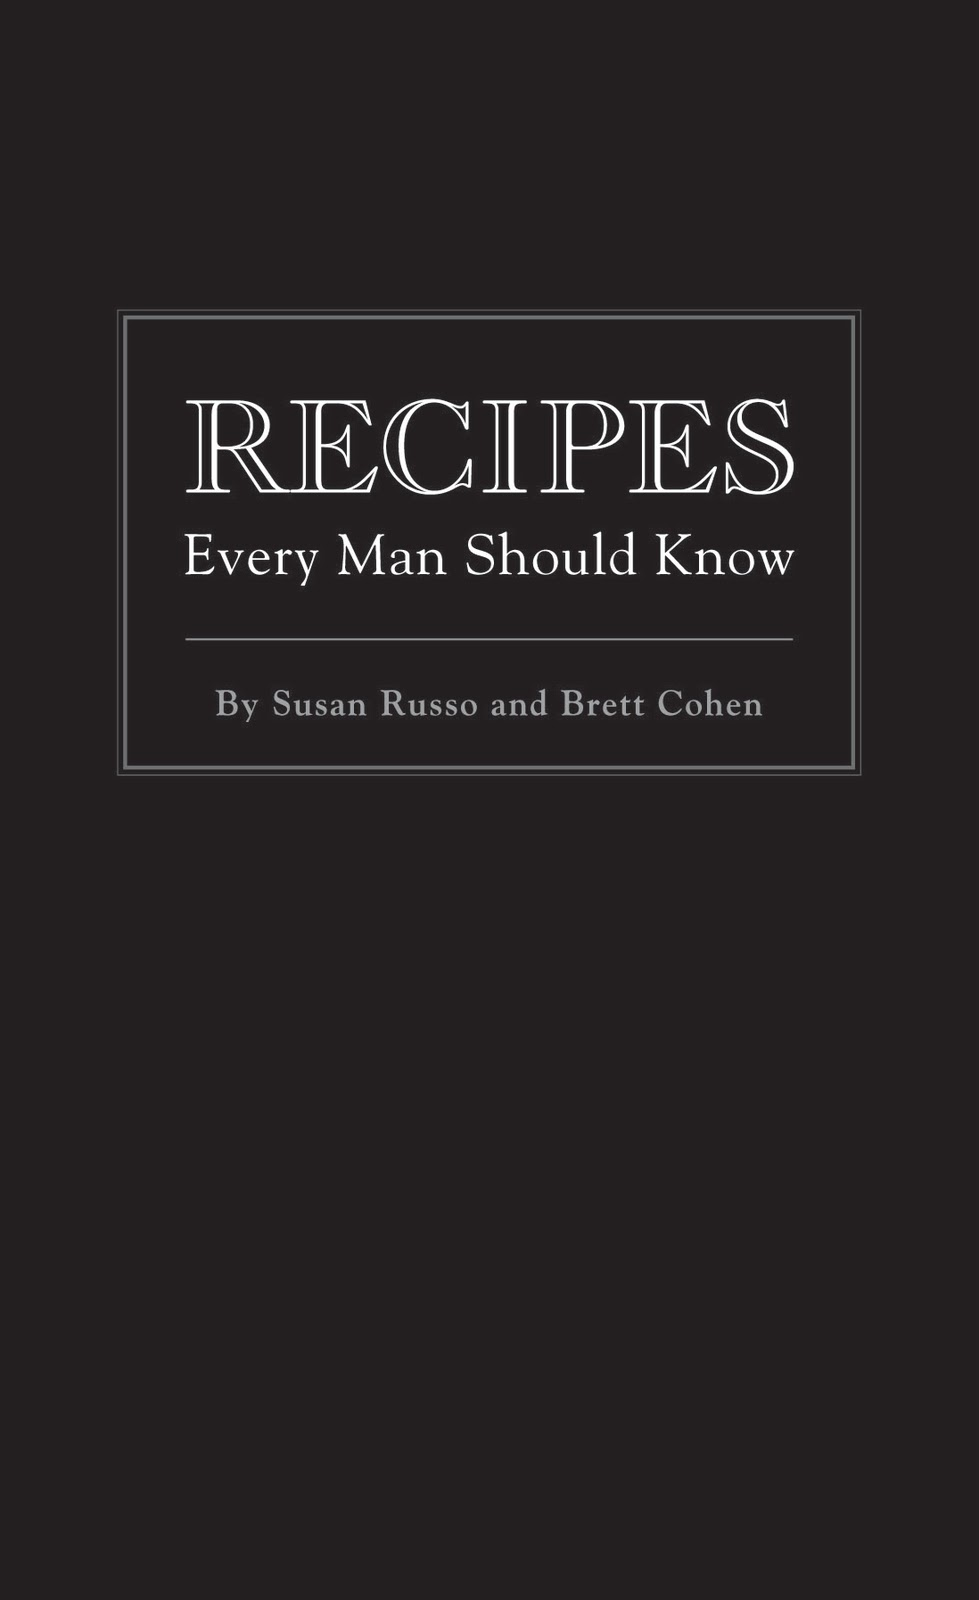 Recipes Every Man Should Know $12.95